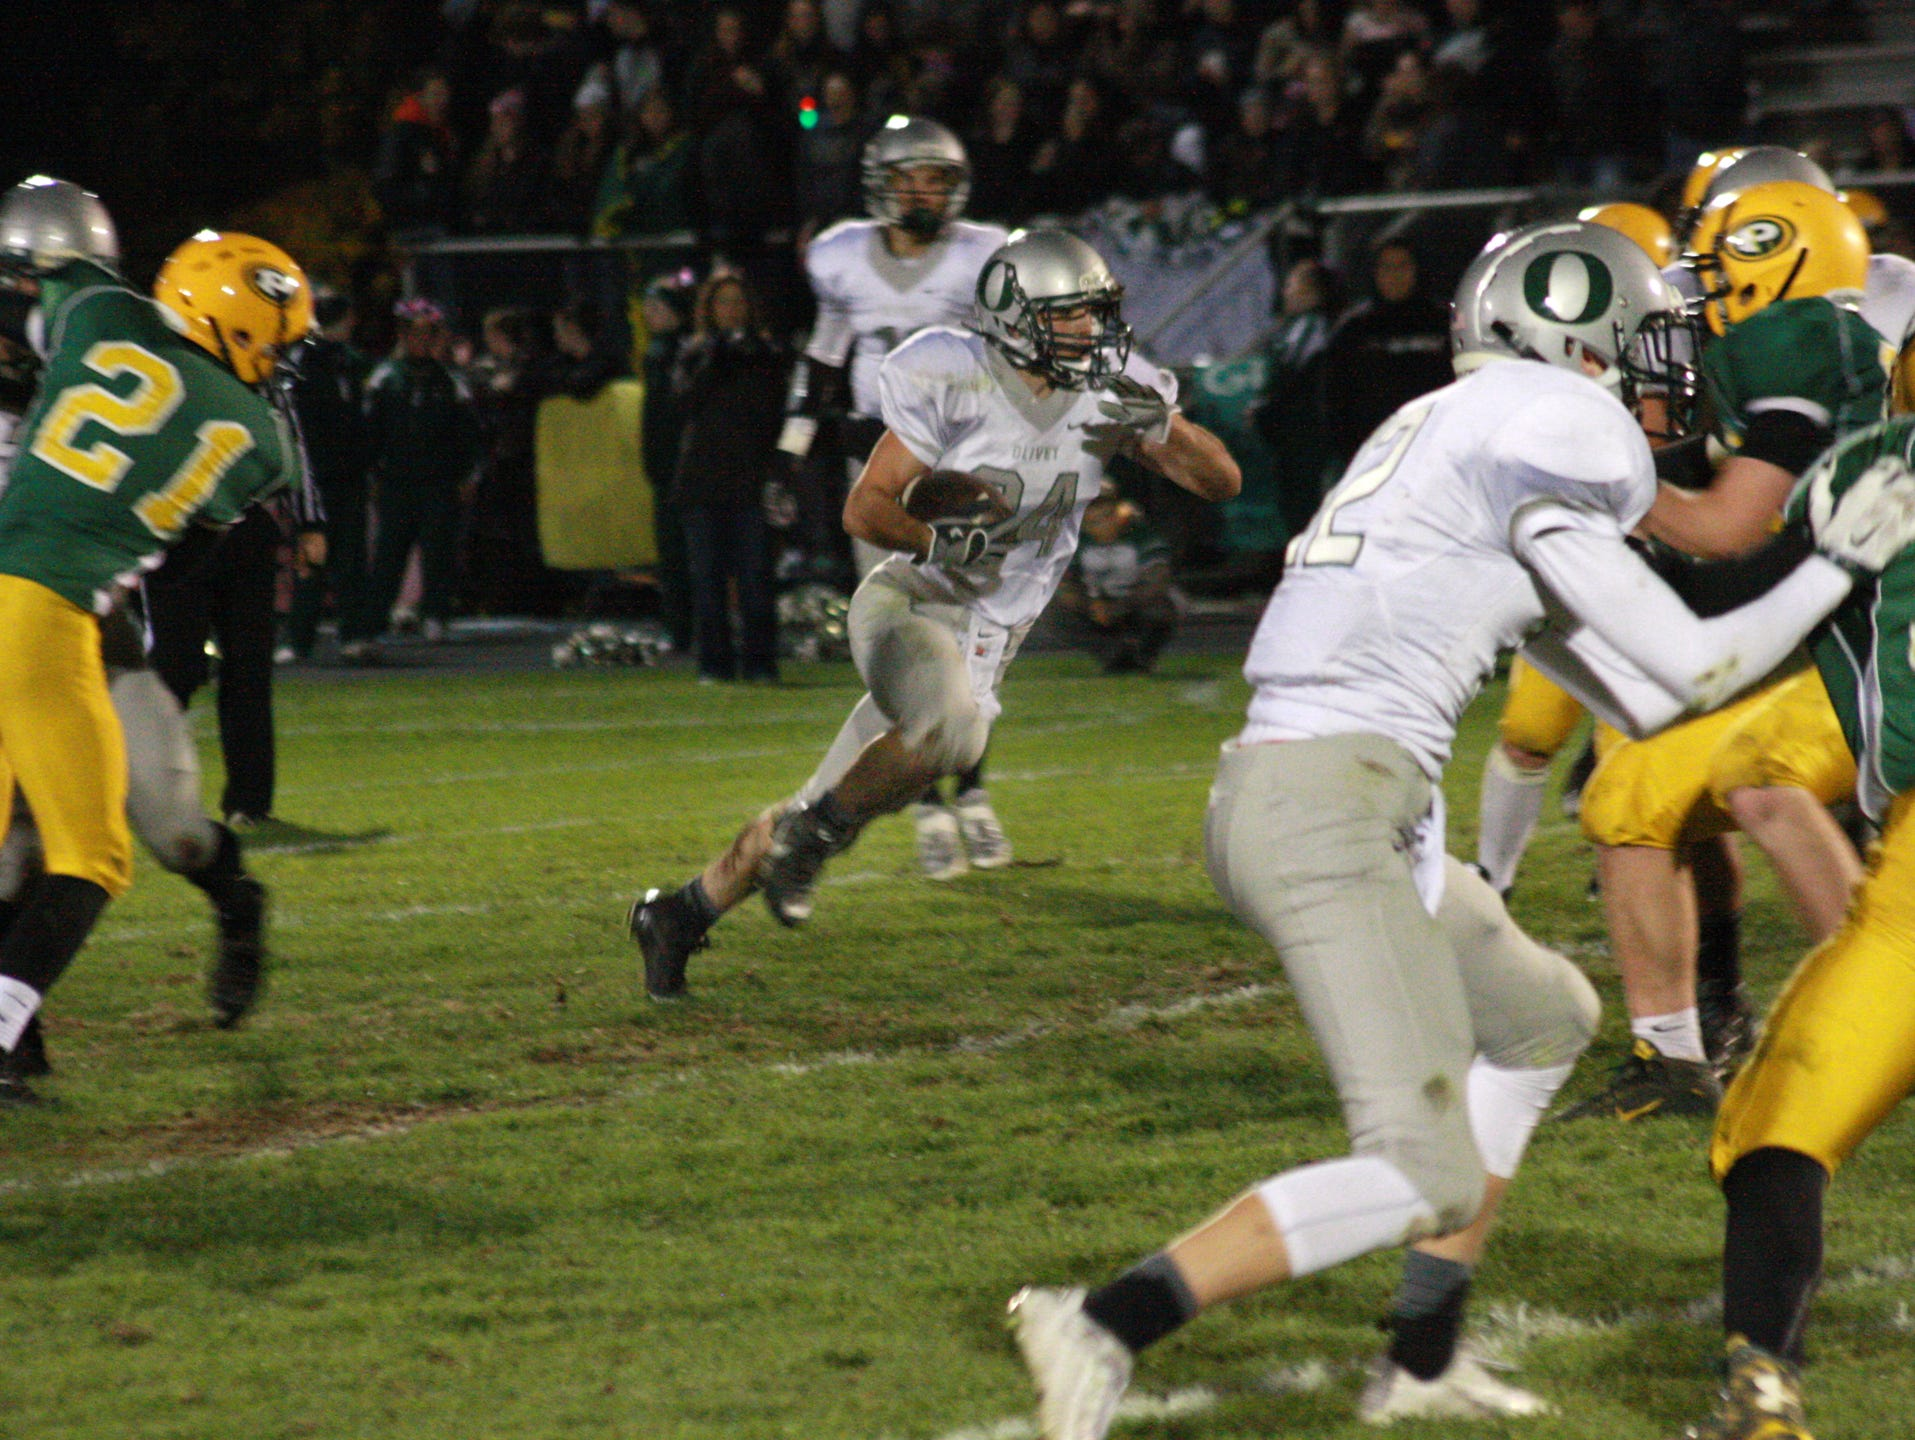 Olivet High School Senior, Chase Martin makes a run during Friday night's game at Pennfield High School